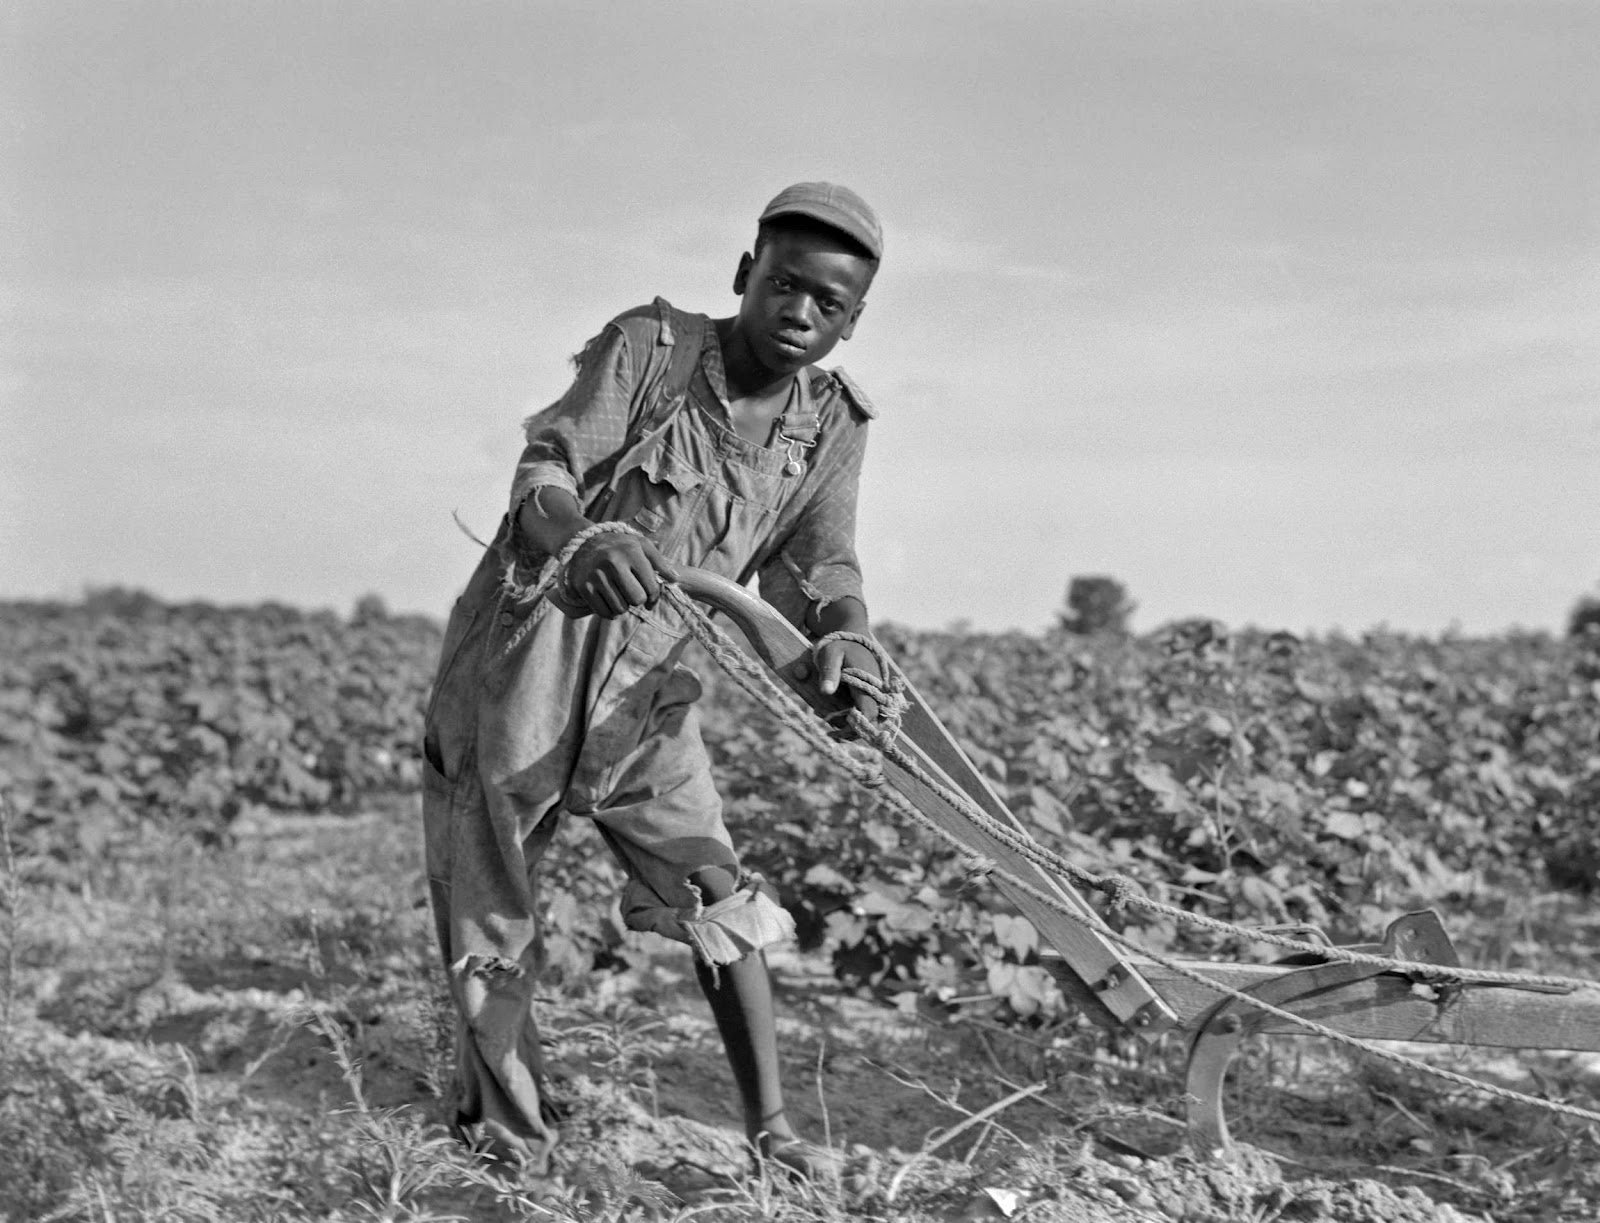 share cropping Get information, facts, and pictures about sharecropping at encyclopediacom make research projects and school reports about sharecropping easy with credible articles from our free, online encyclopedia and dictionary.